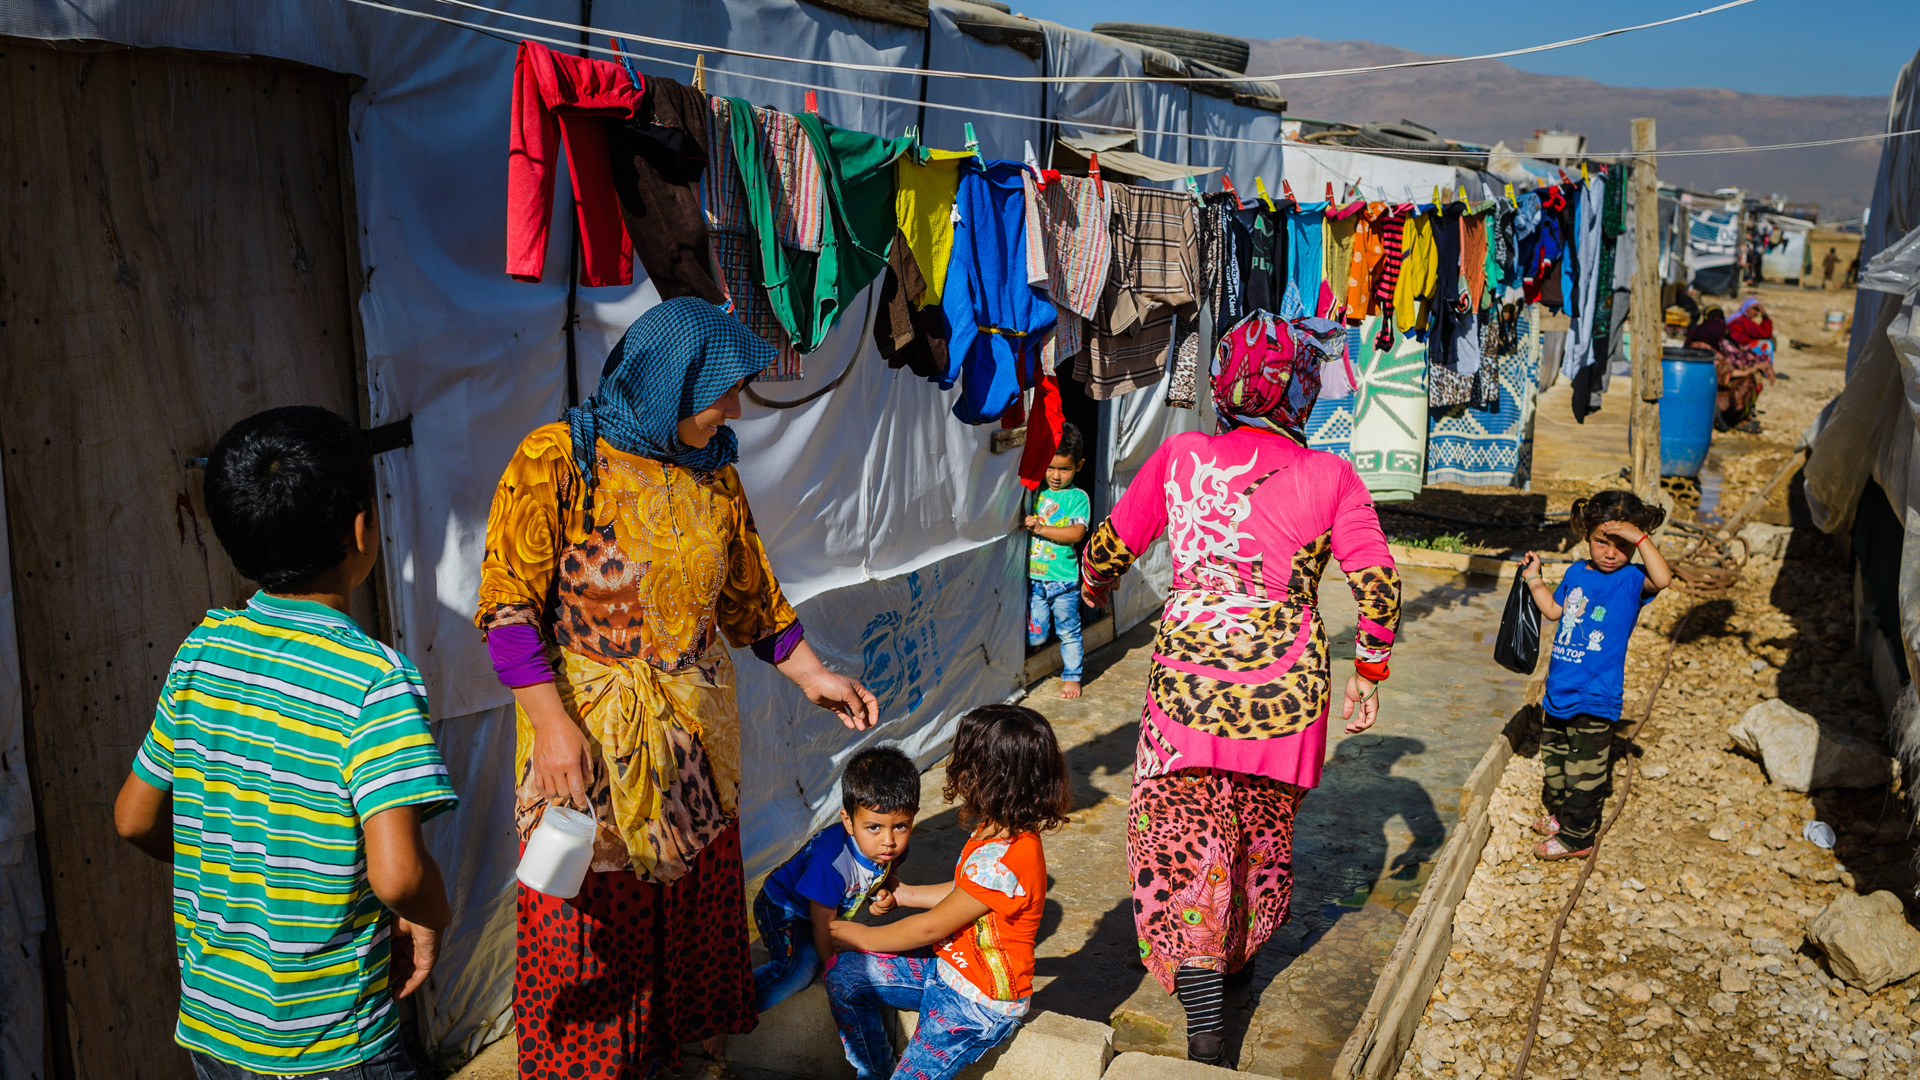 Syrian women and children in a refugee camp in Bar Elias in the Bekaa plain, Lebanon